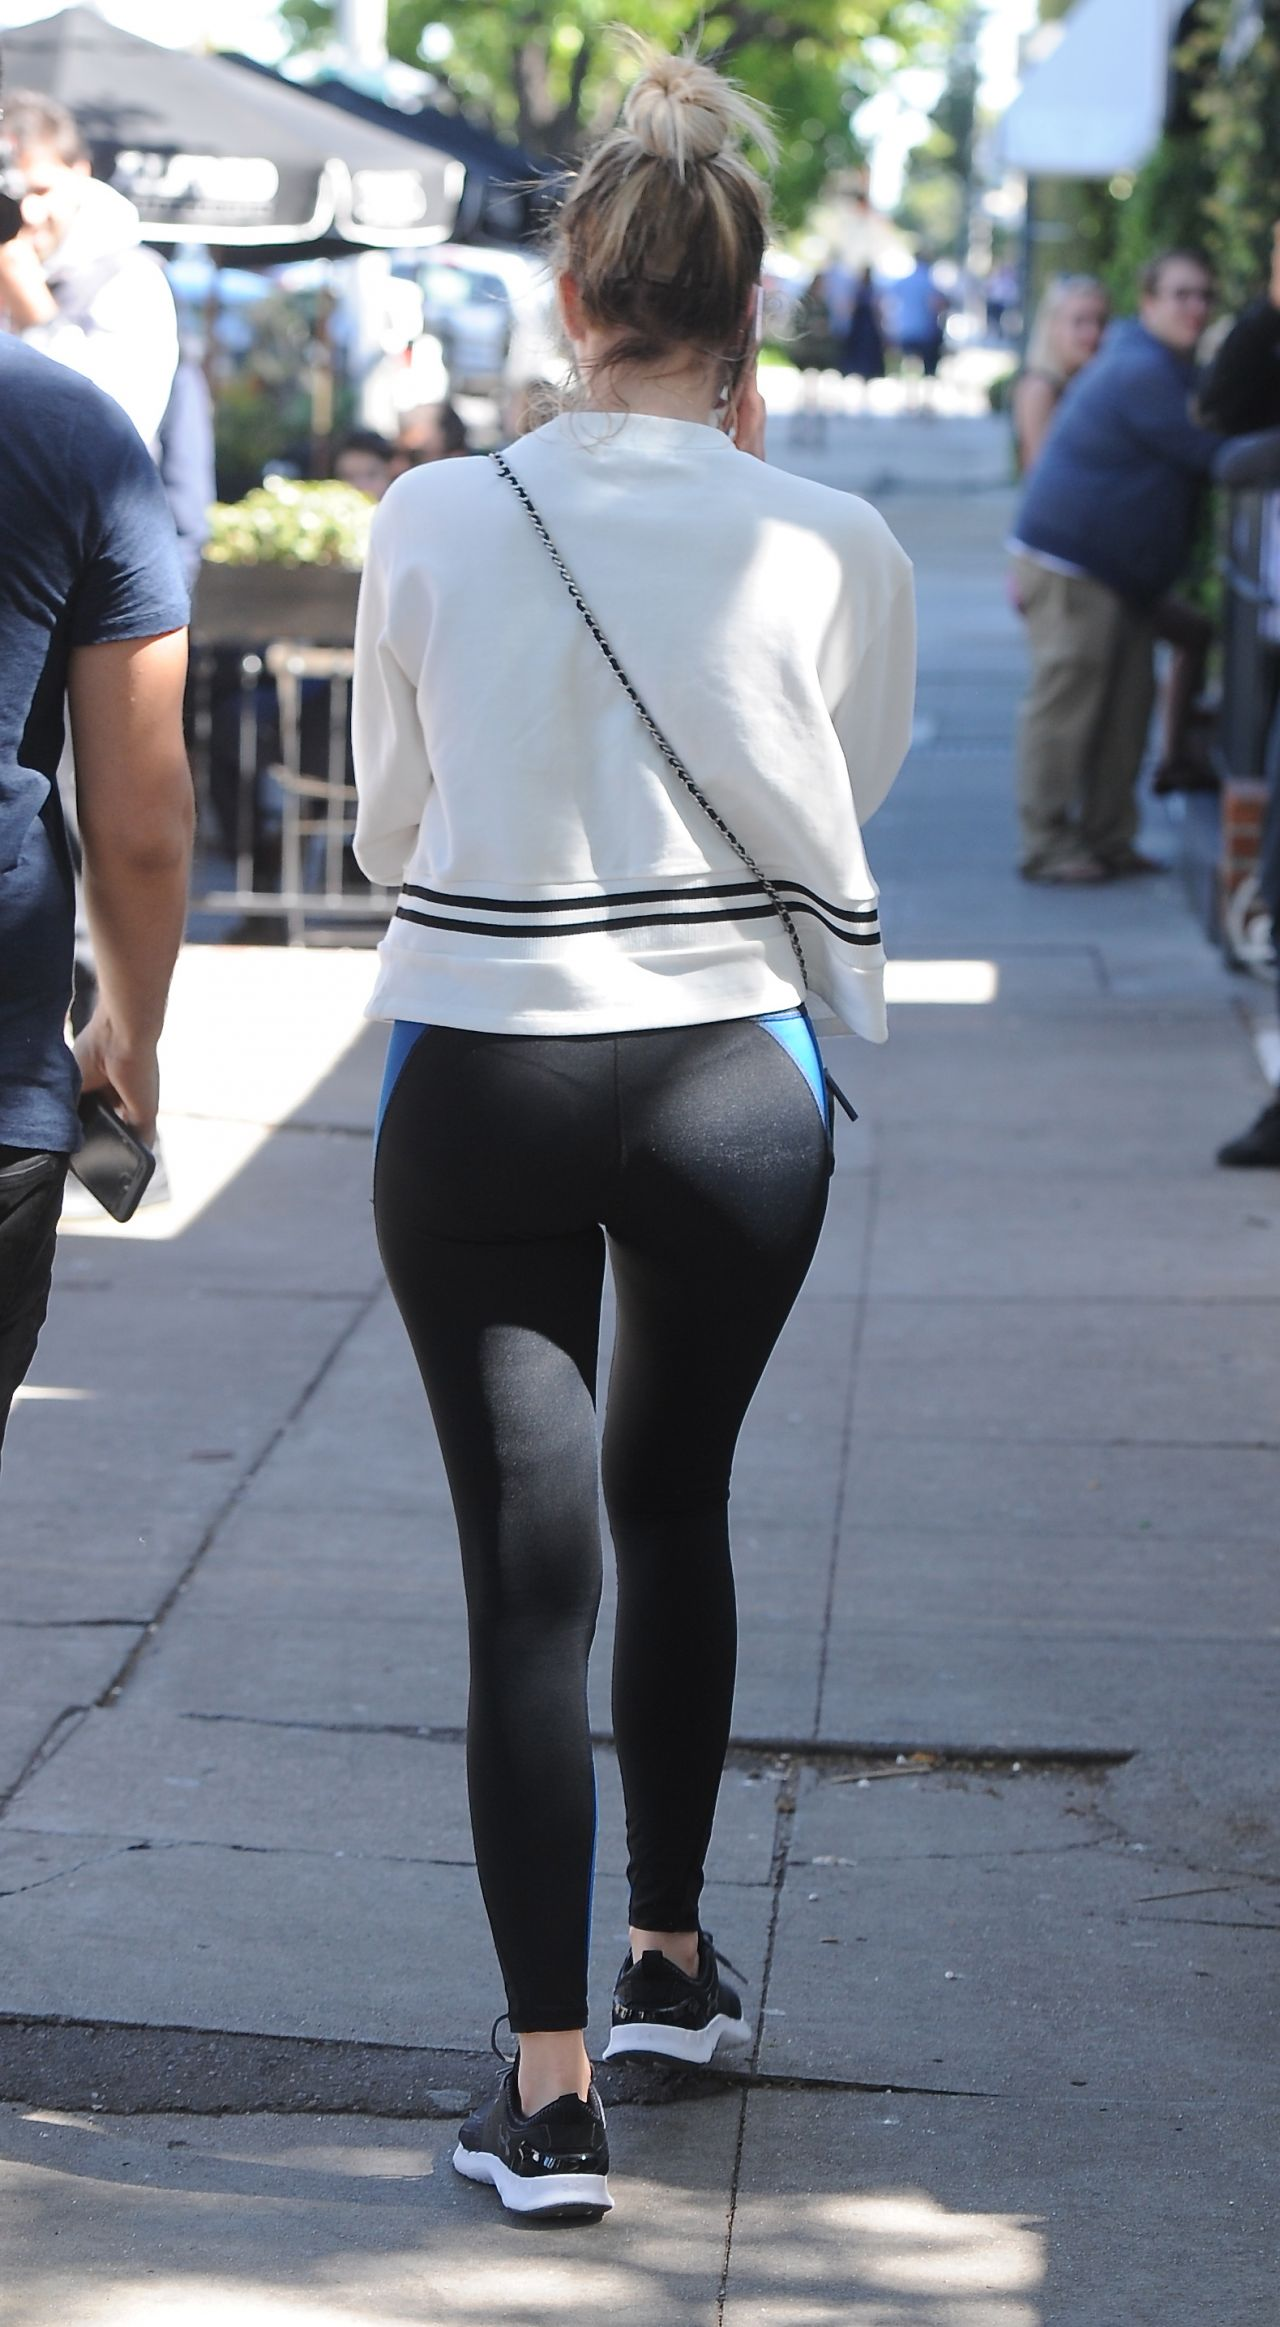 Ashley Benson In Spandex - Out In Melrose Place 382016-5935